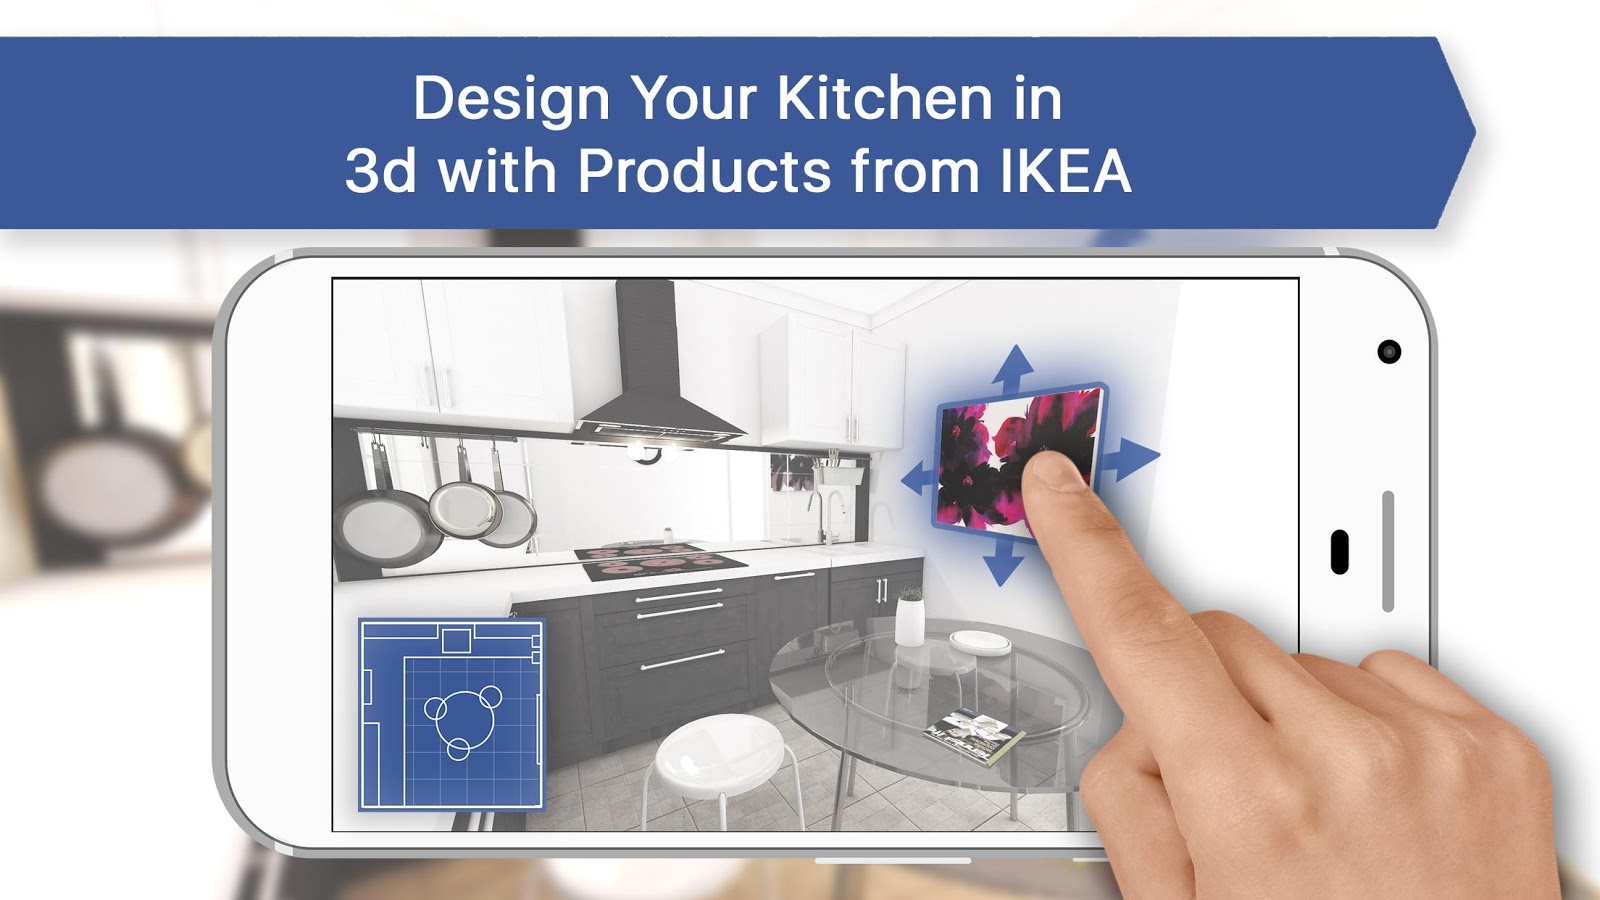 Kitchen Design Plan App 3d Kitchen Design For Ikea Room Interior Planner App